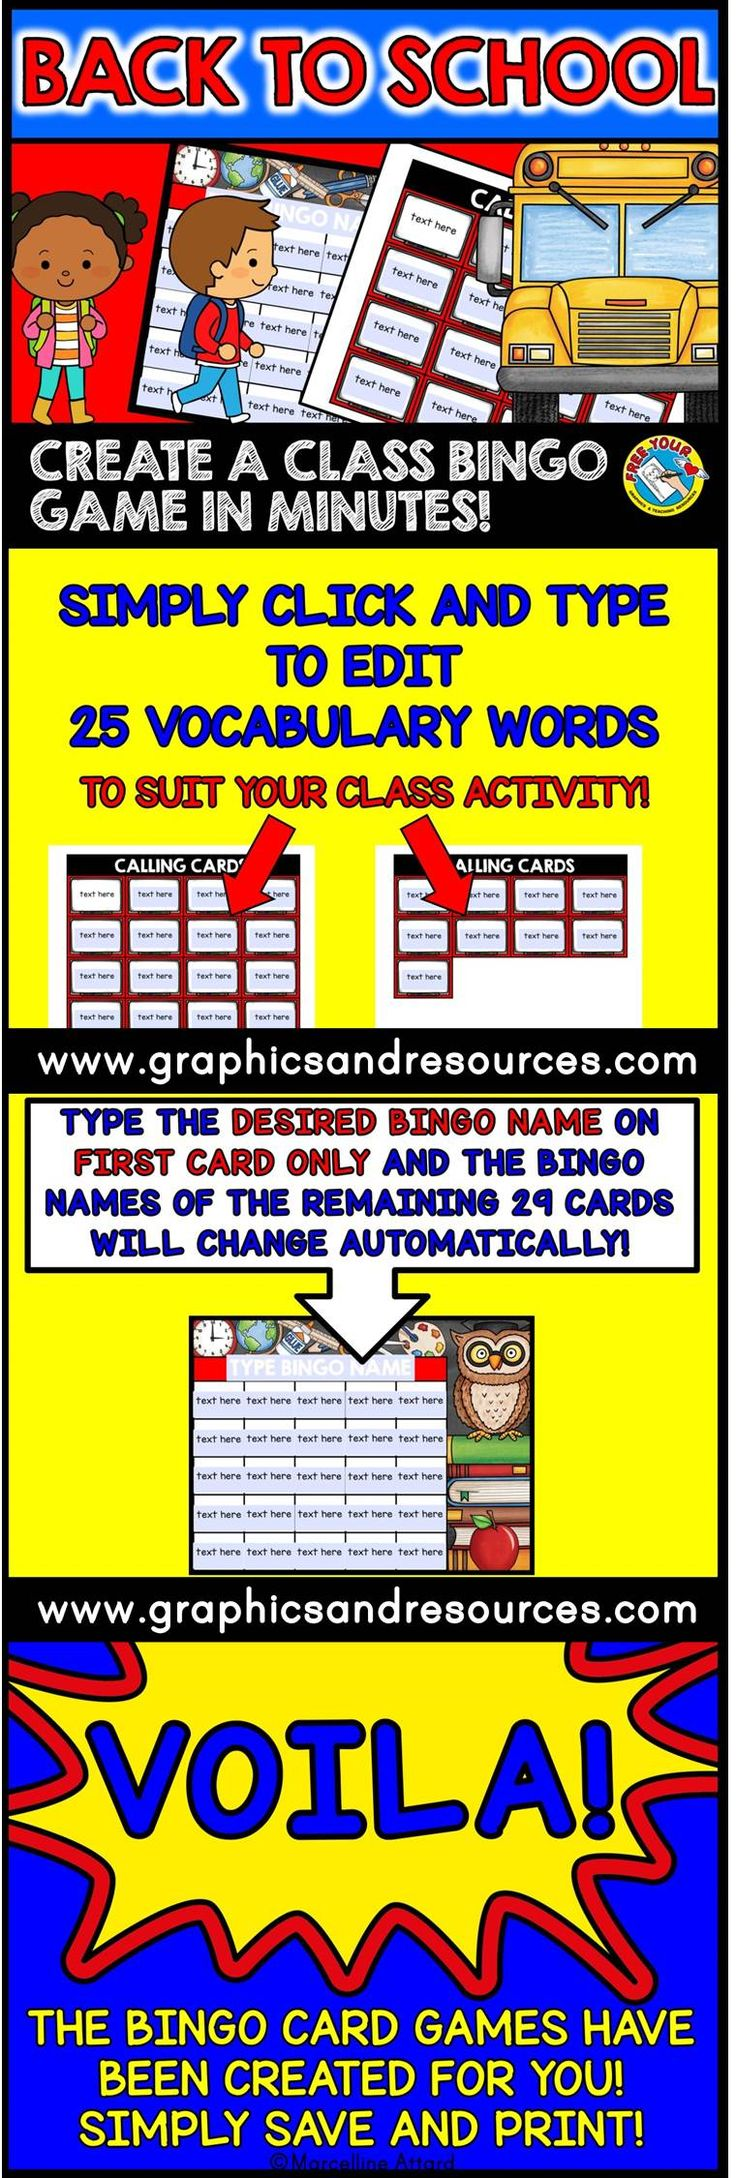 Create a customized bingo game in minutes! This back to school theme bingo maker lets you create a set of 30 bingo cards in a few minutes! Super easy and fun for everyone! Click to view bingo this editable resource!